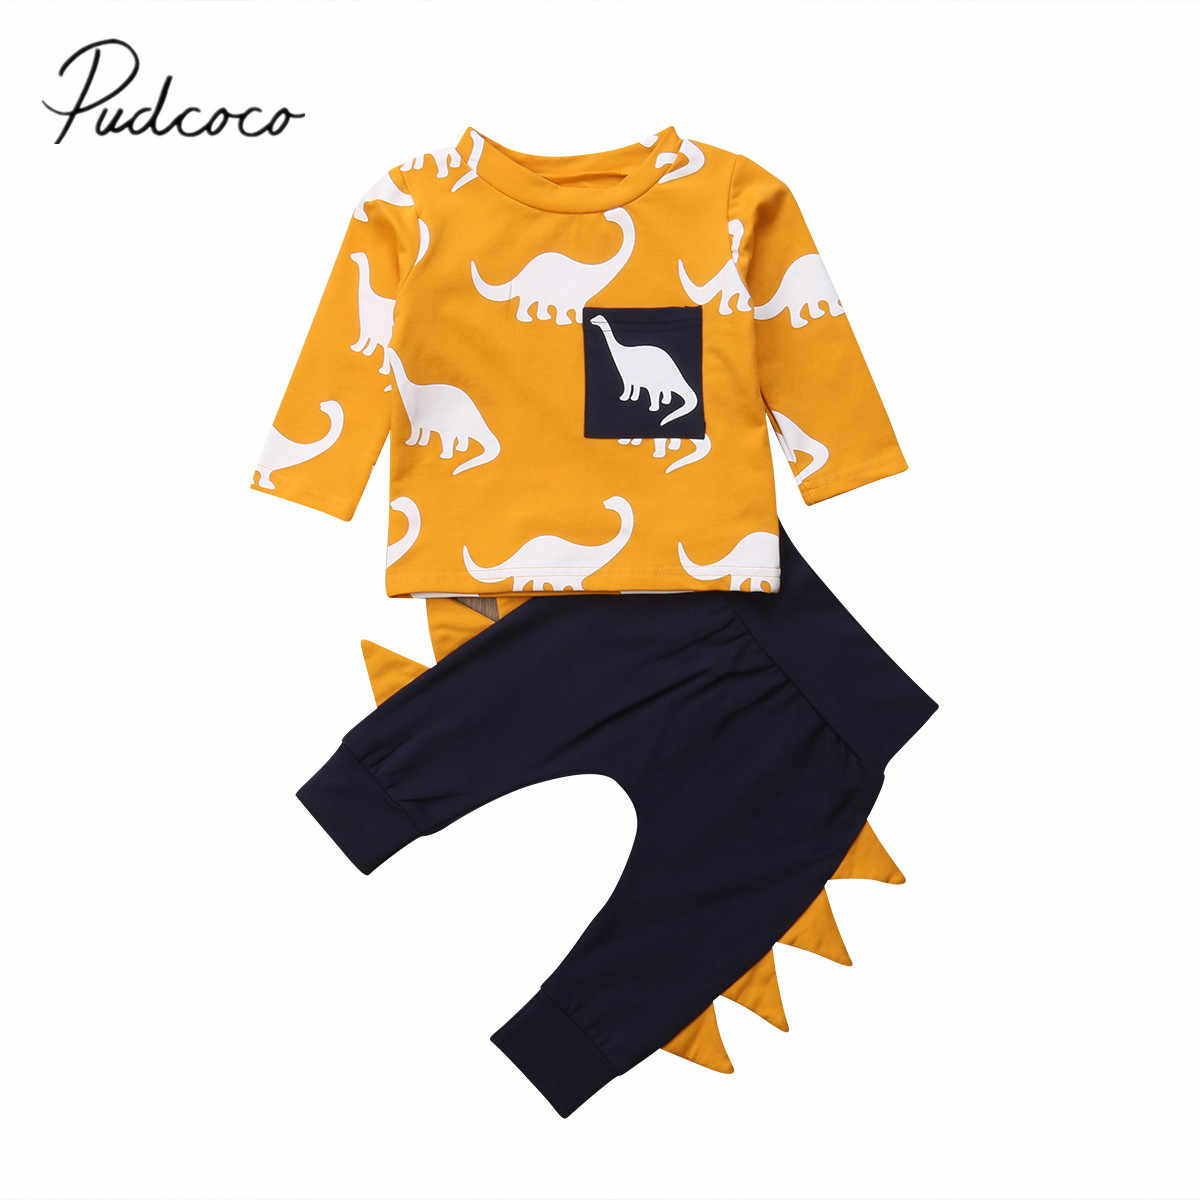 2018 Brand New Toddler Baby Girl Boy Autumn Clothes Sets Dinosaur Print Long Sleeve Pullover Sweatshirt Tops+ 3D Triangle Pants